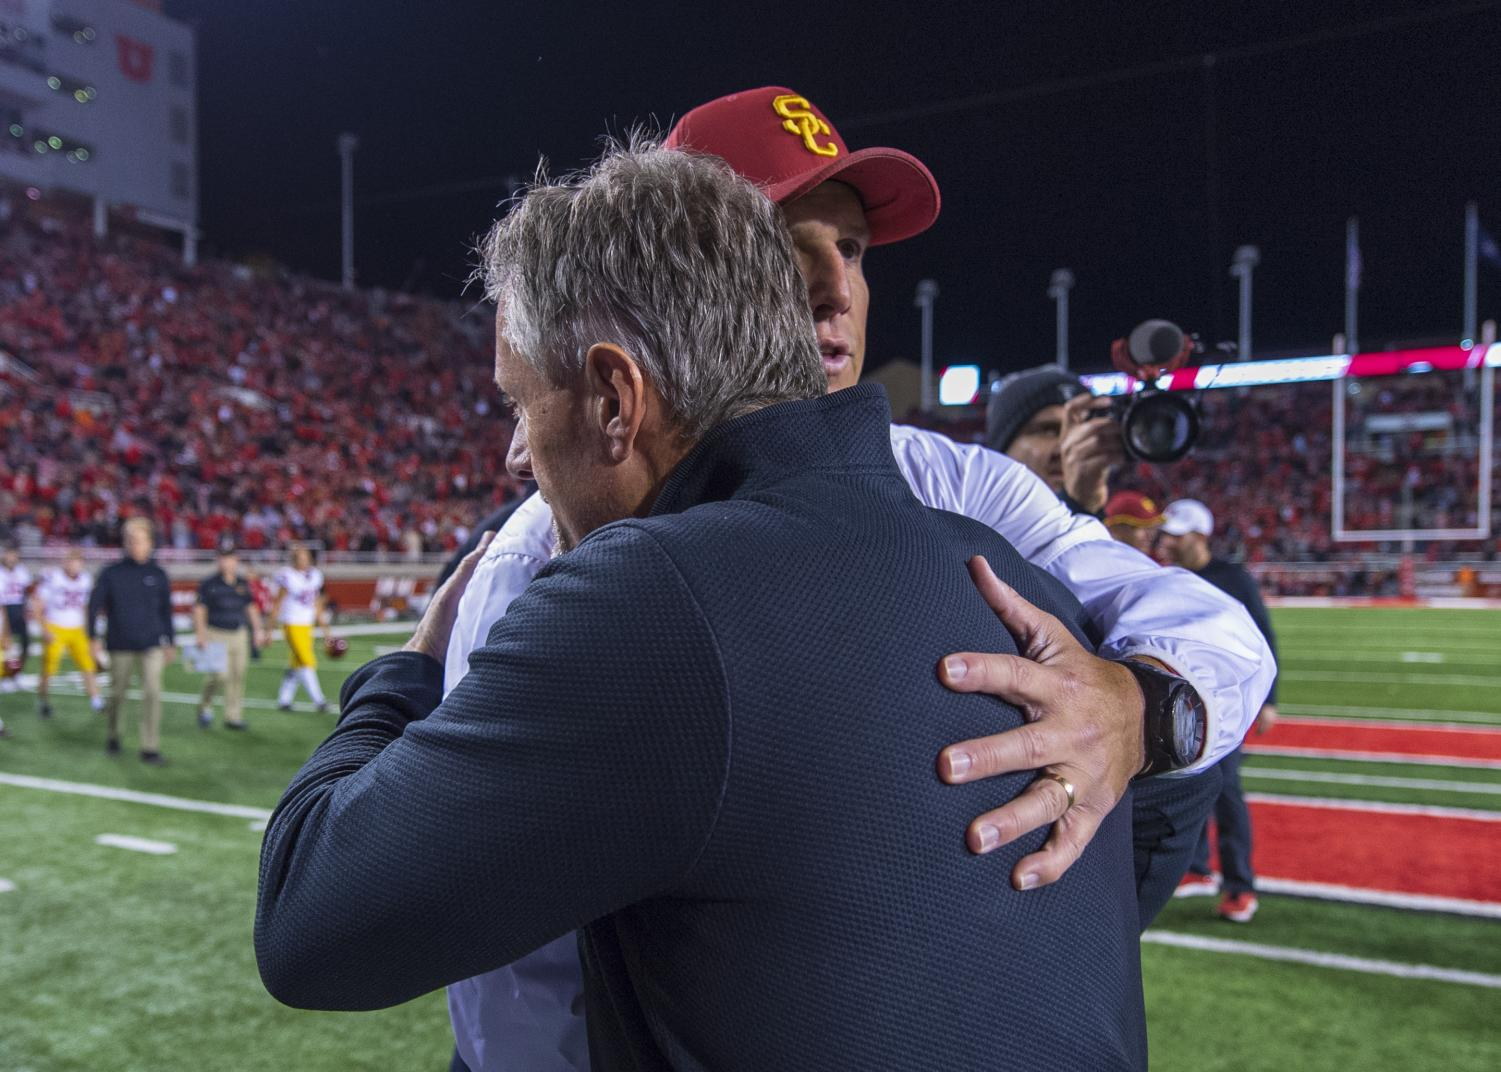 University of Utah football head coach Kyle Whittingham embraces University of Southern California football head coach Clay Helton following an NCAA Football game at Rice Eccles Stadium in Salt Lake City, Utah on Saturday, Oct. 20, 2018. (Photo by Kiffer Creveling | The Daily Utah Chronicle)